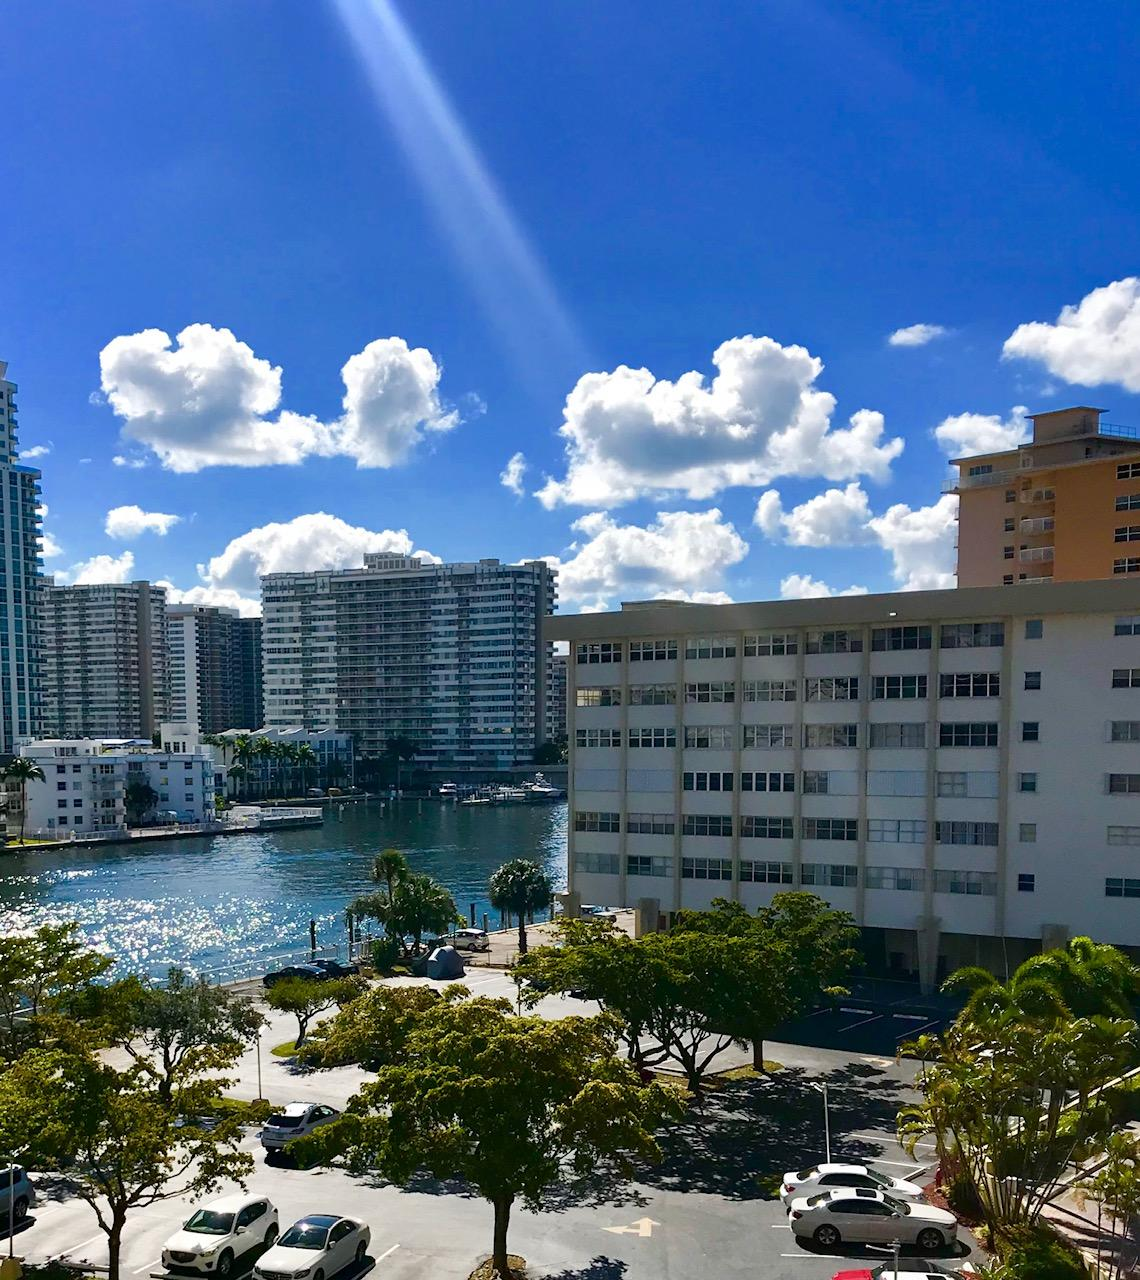 100 Golden Isles Drive, Hallandale Beach, Florida 33009, 2 Bedrooms Bedrooms, ,2.2 BathroomsBathrooms,Condo/Coop,For Sale,LAKE POINT TOWER,Golden Isles,6,RX-10502742